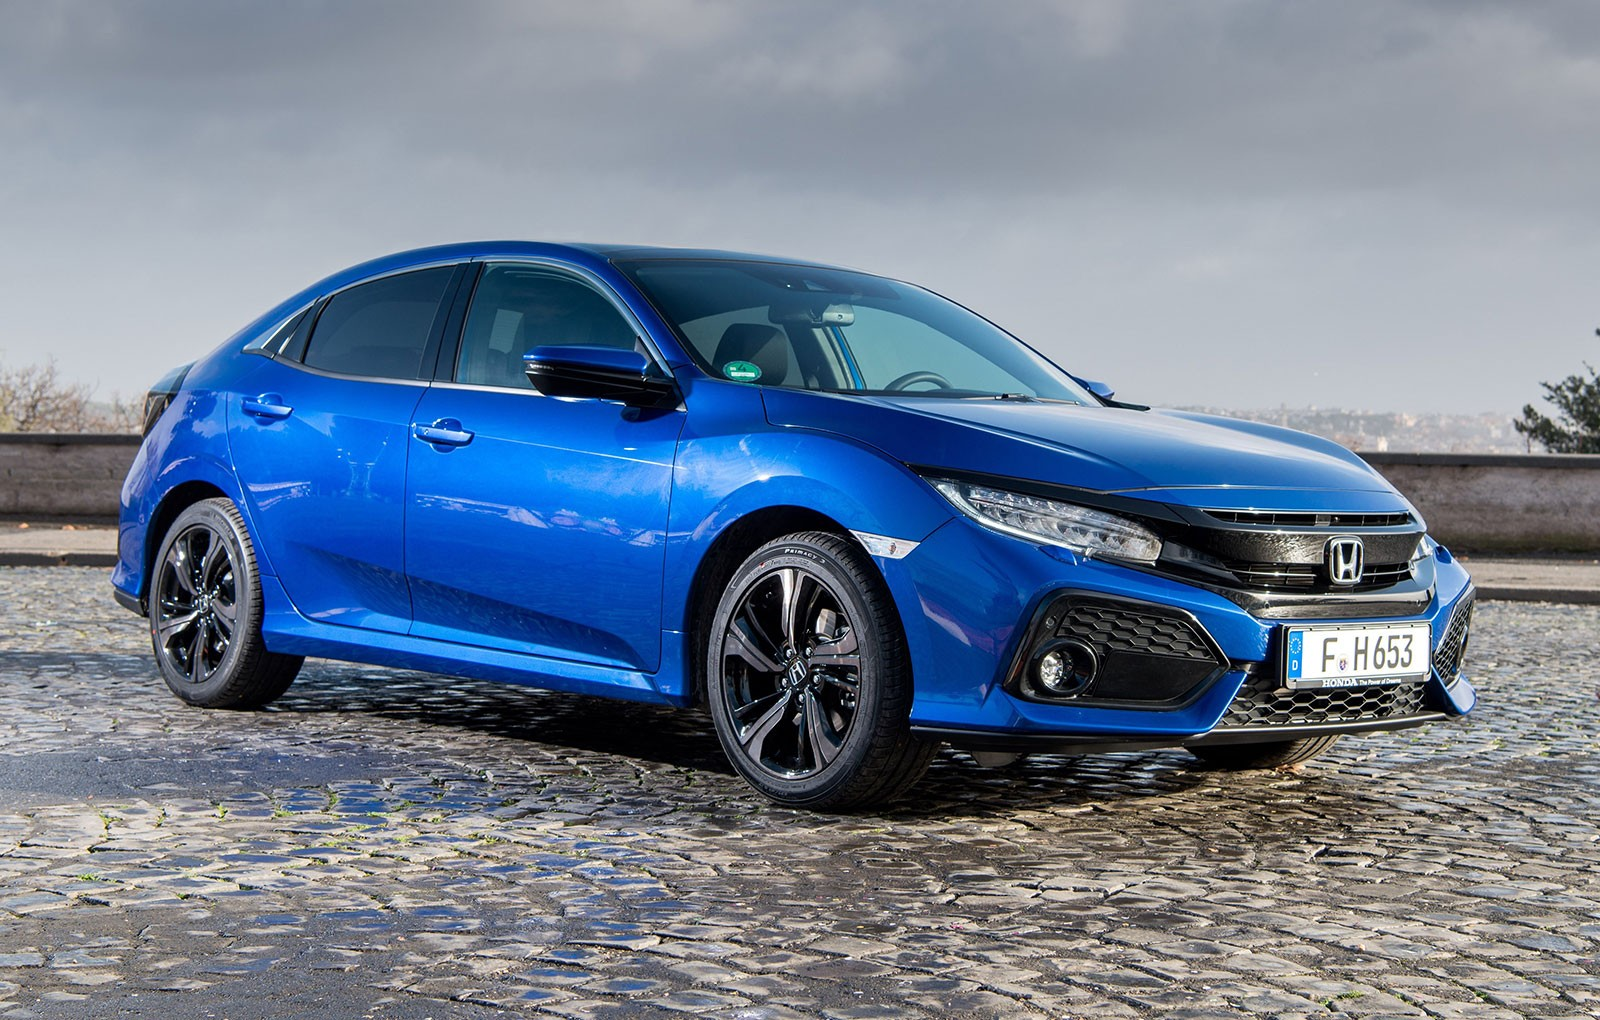 2019 Honda Civic Sedan Priced At $19,450, Civic Coupe ...